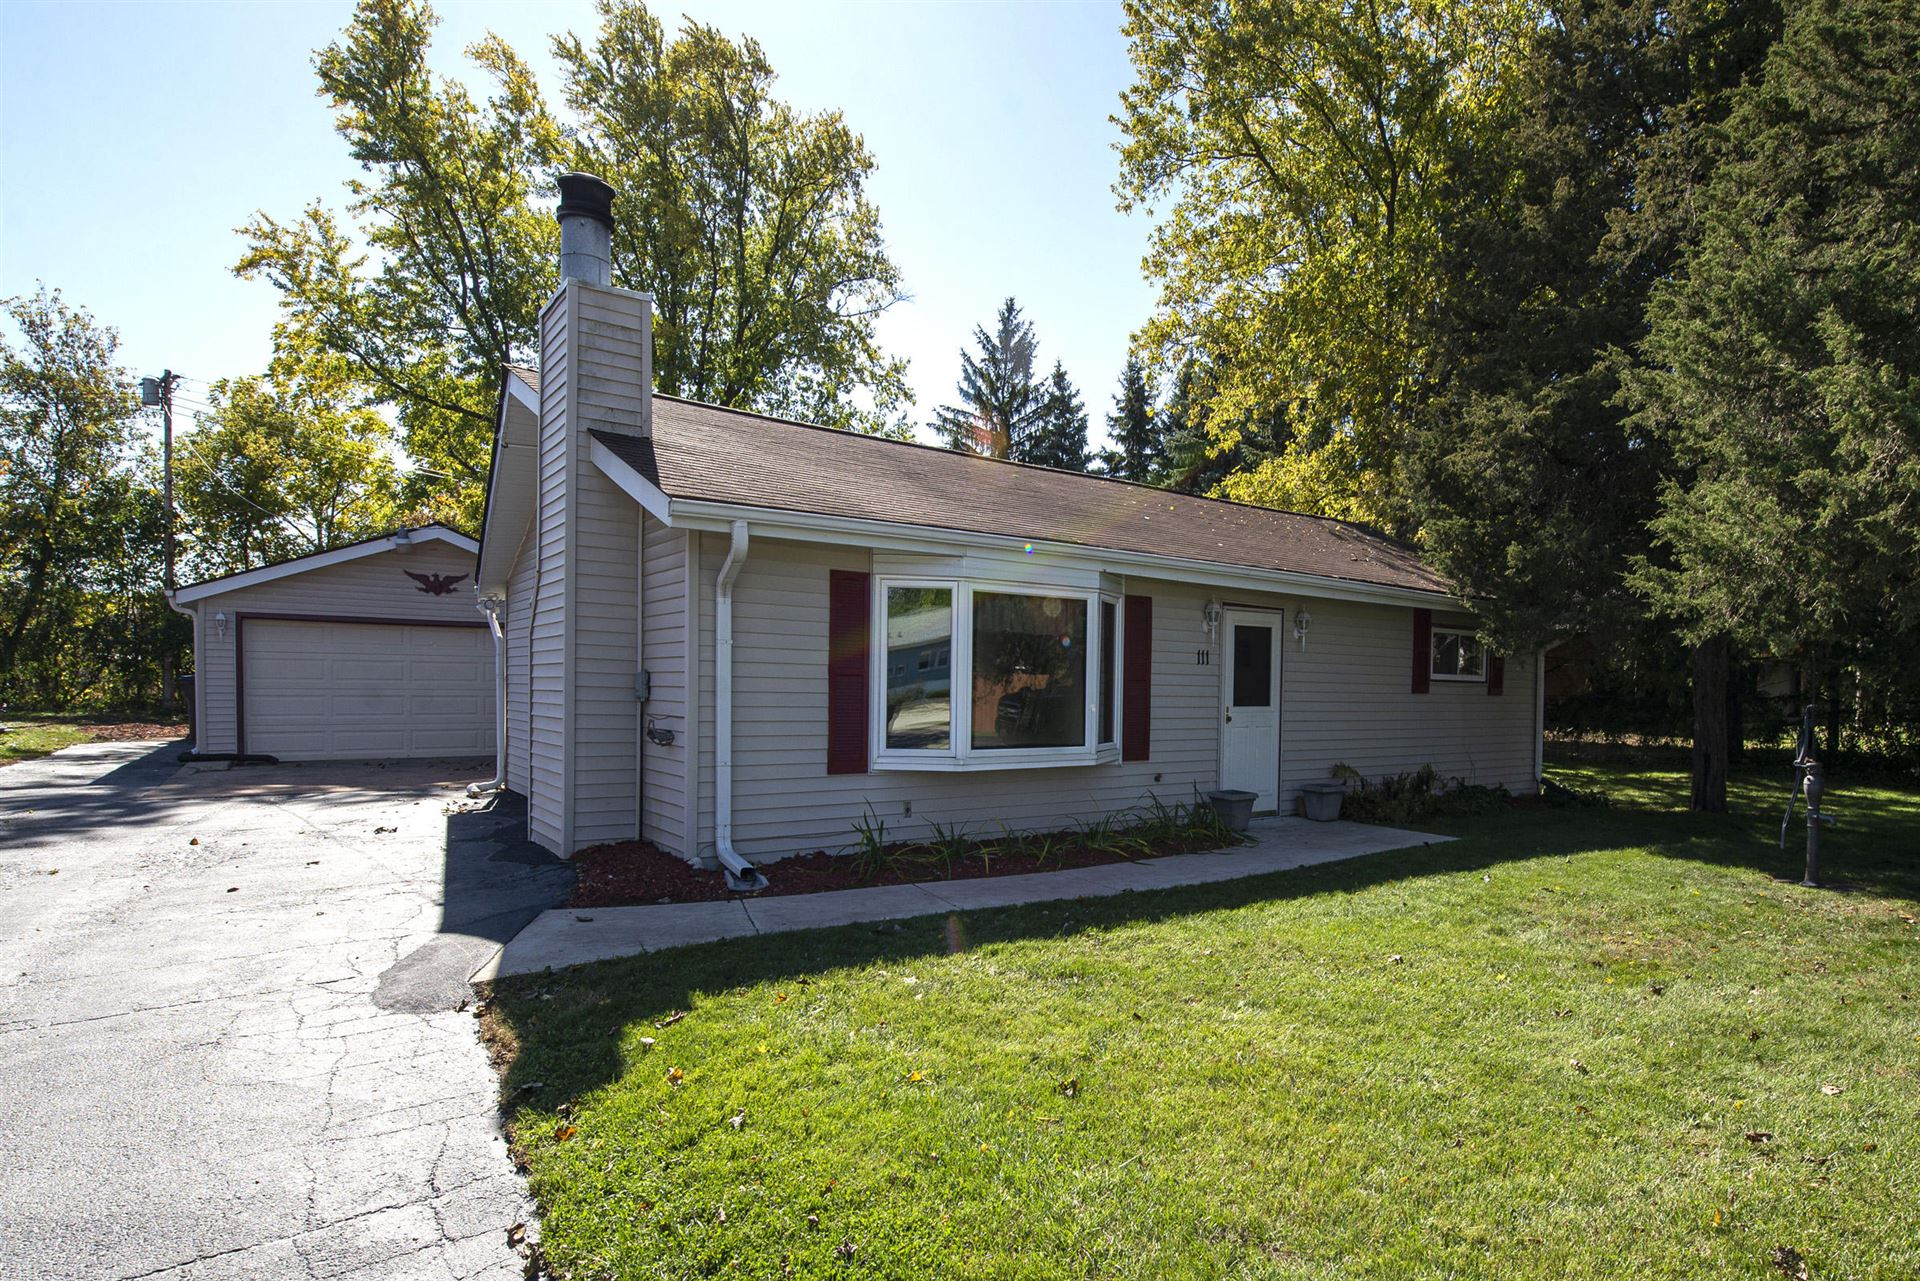 111 E South St, Wales, WI 53183 - #: 1713780